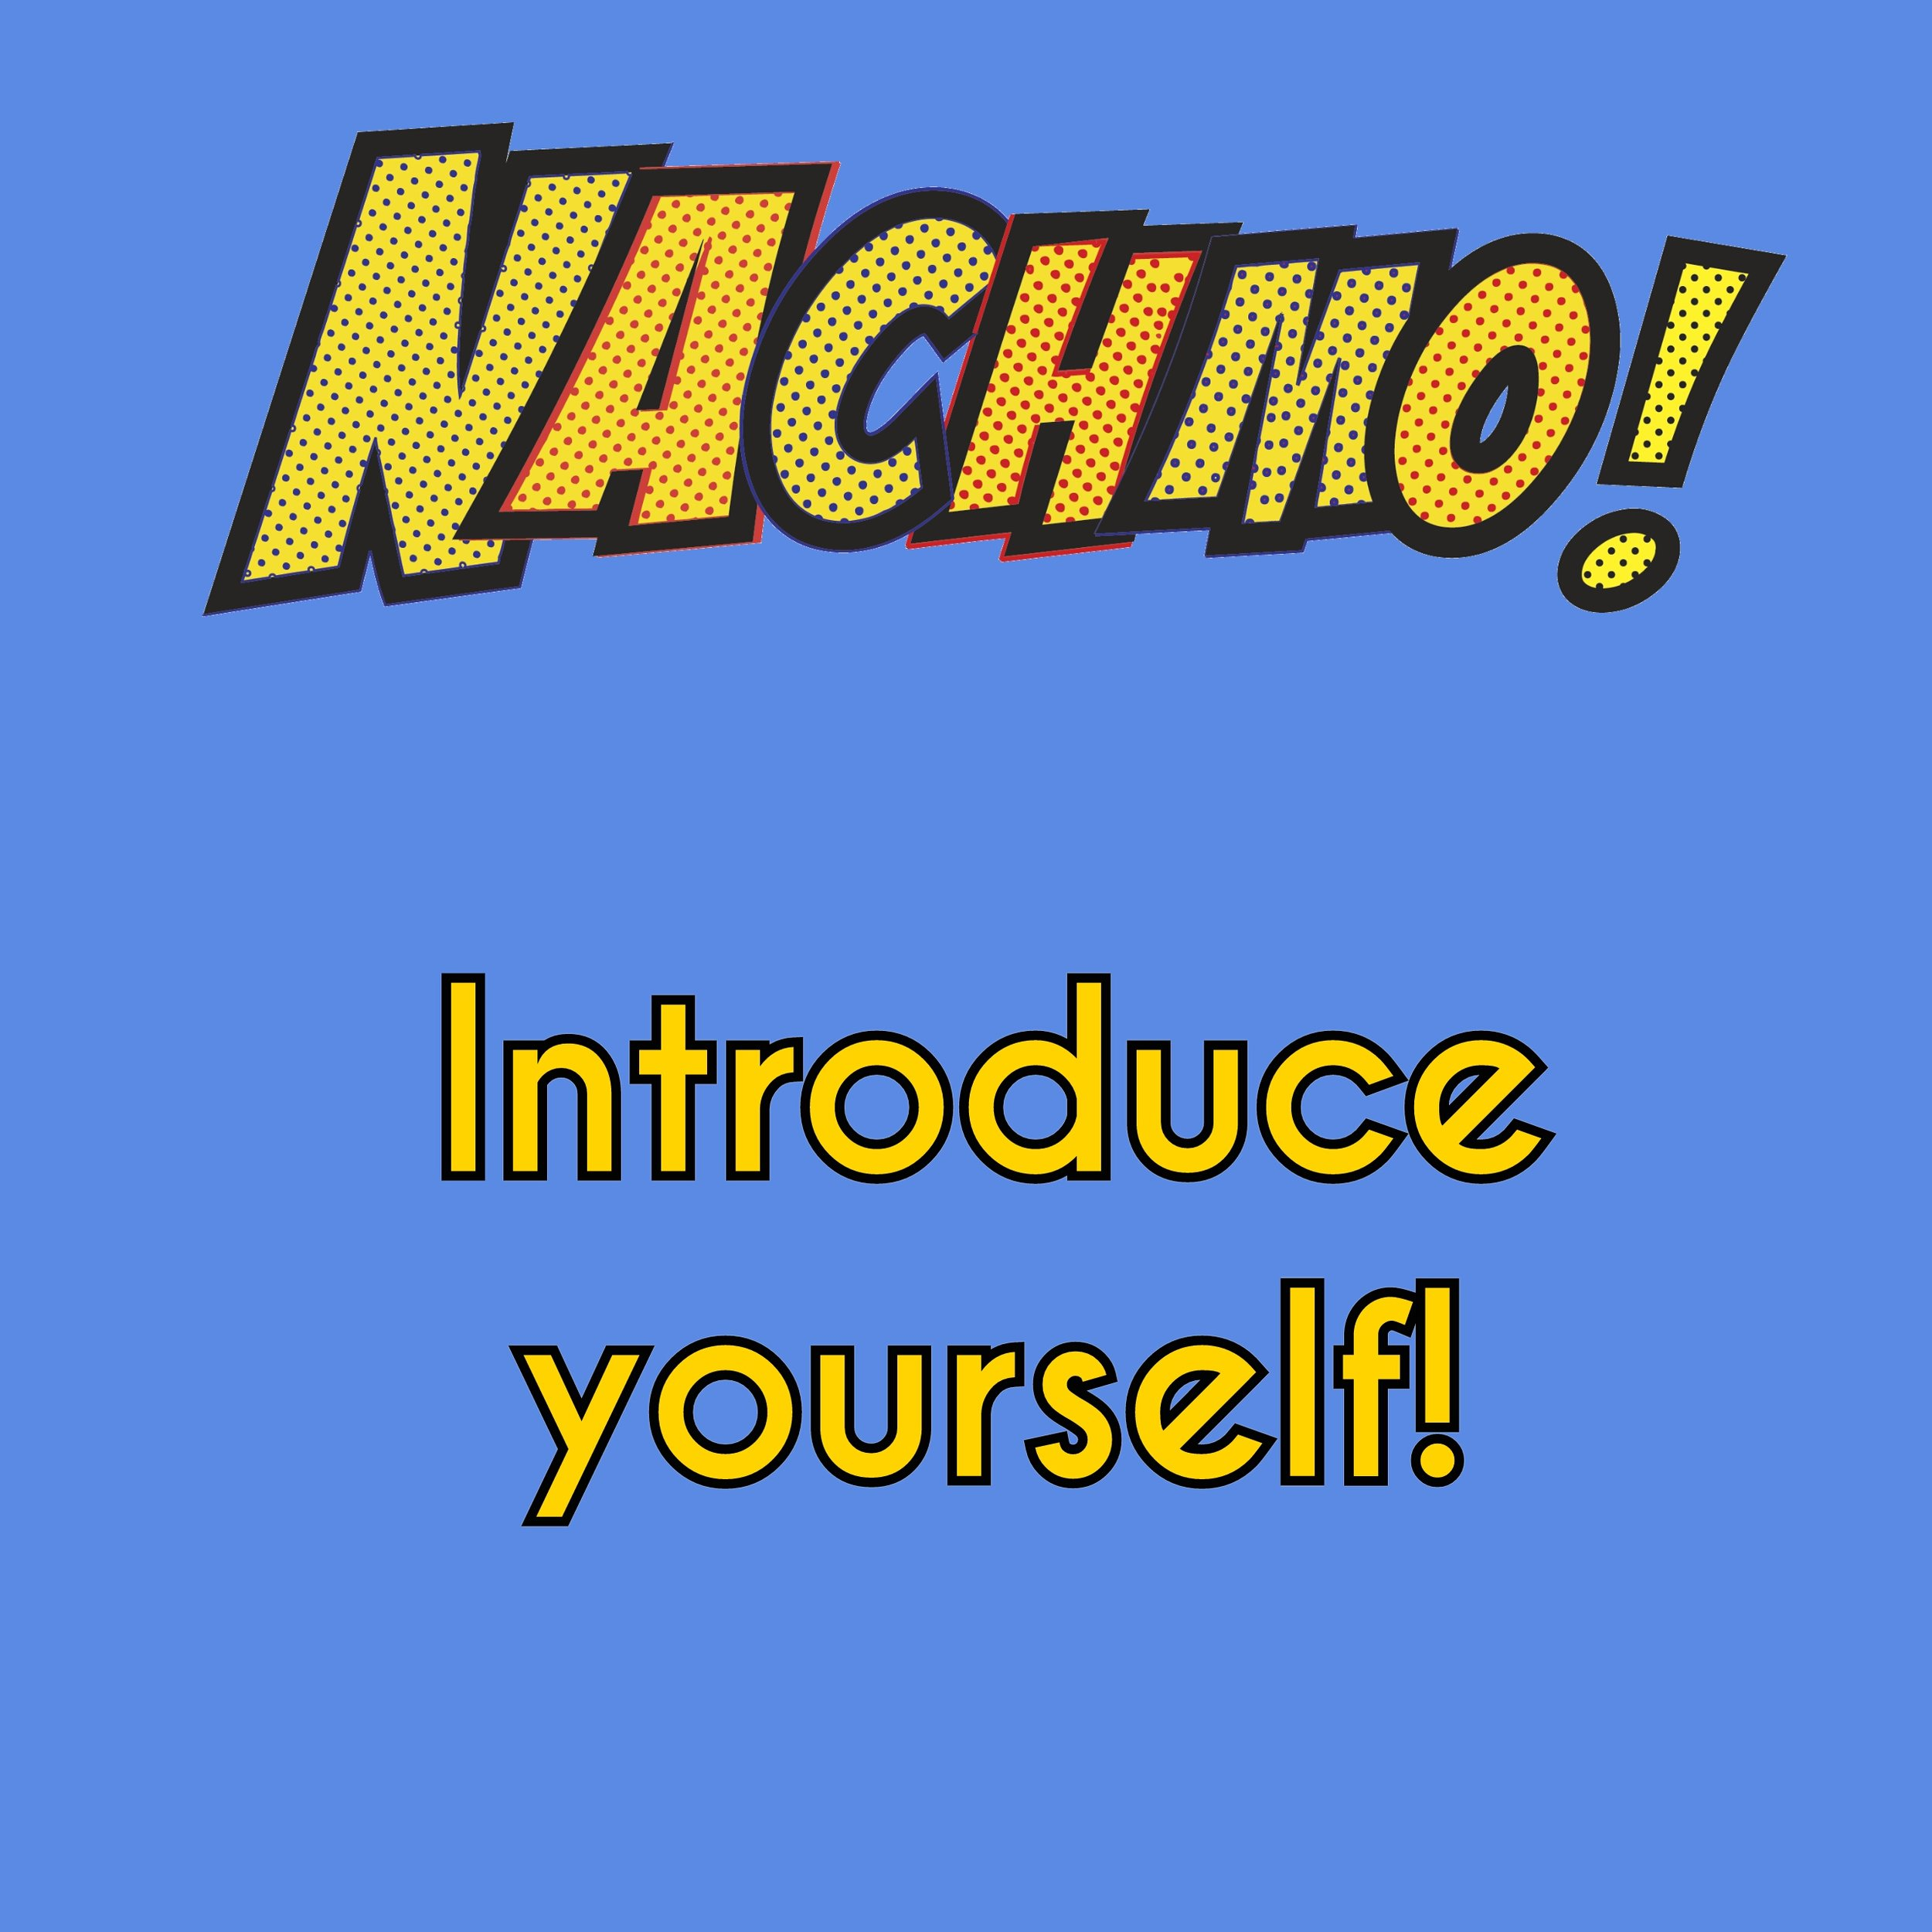 Jan 1: Introduce yourself! - Prompt: State your name and NACHMO goal for the month on social media!Plus: Find a notebook that you can keep notes in.Lens: Start making a playlist that keeps track of videos you like.